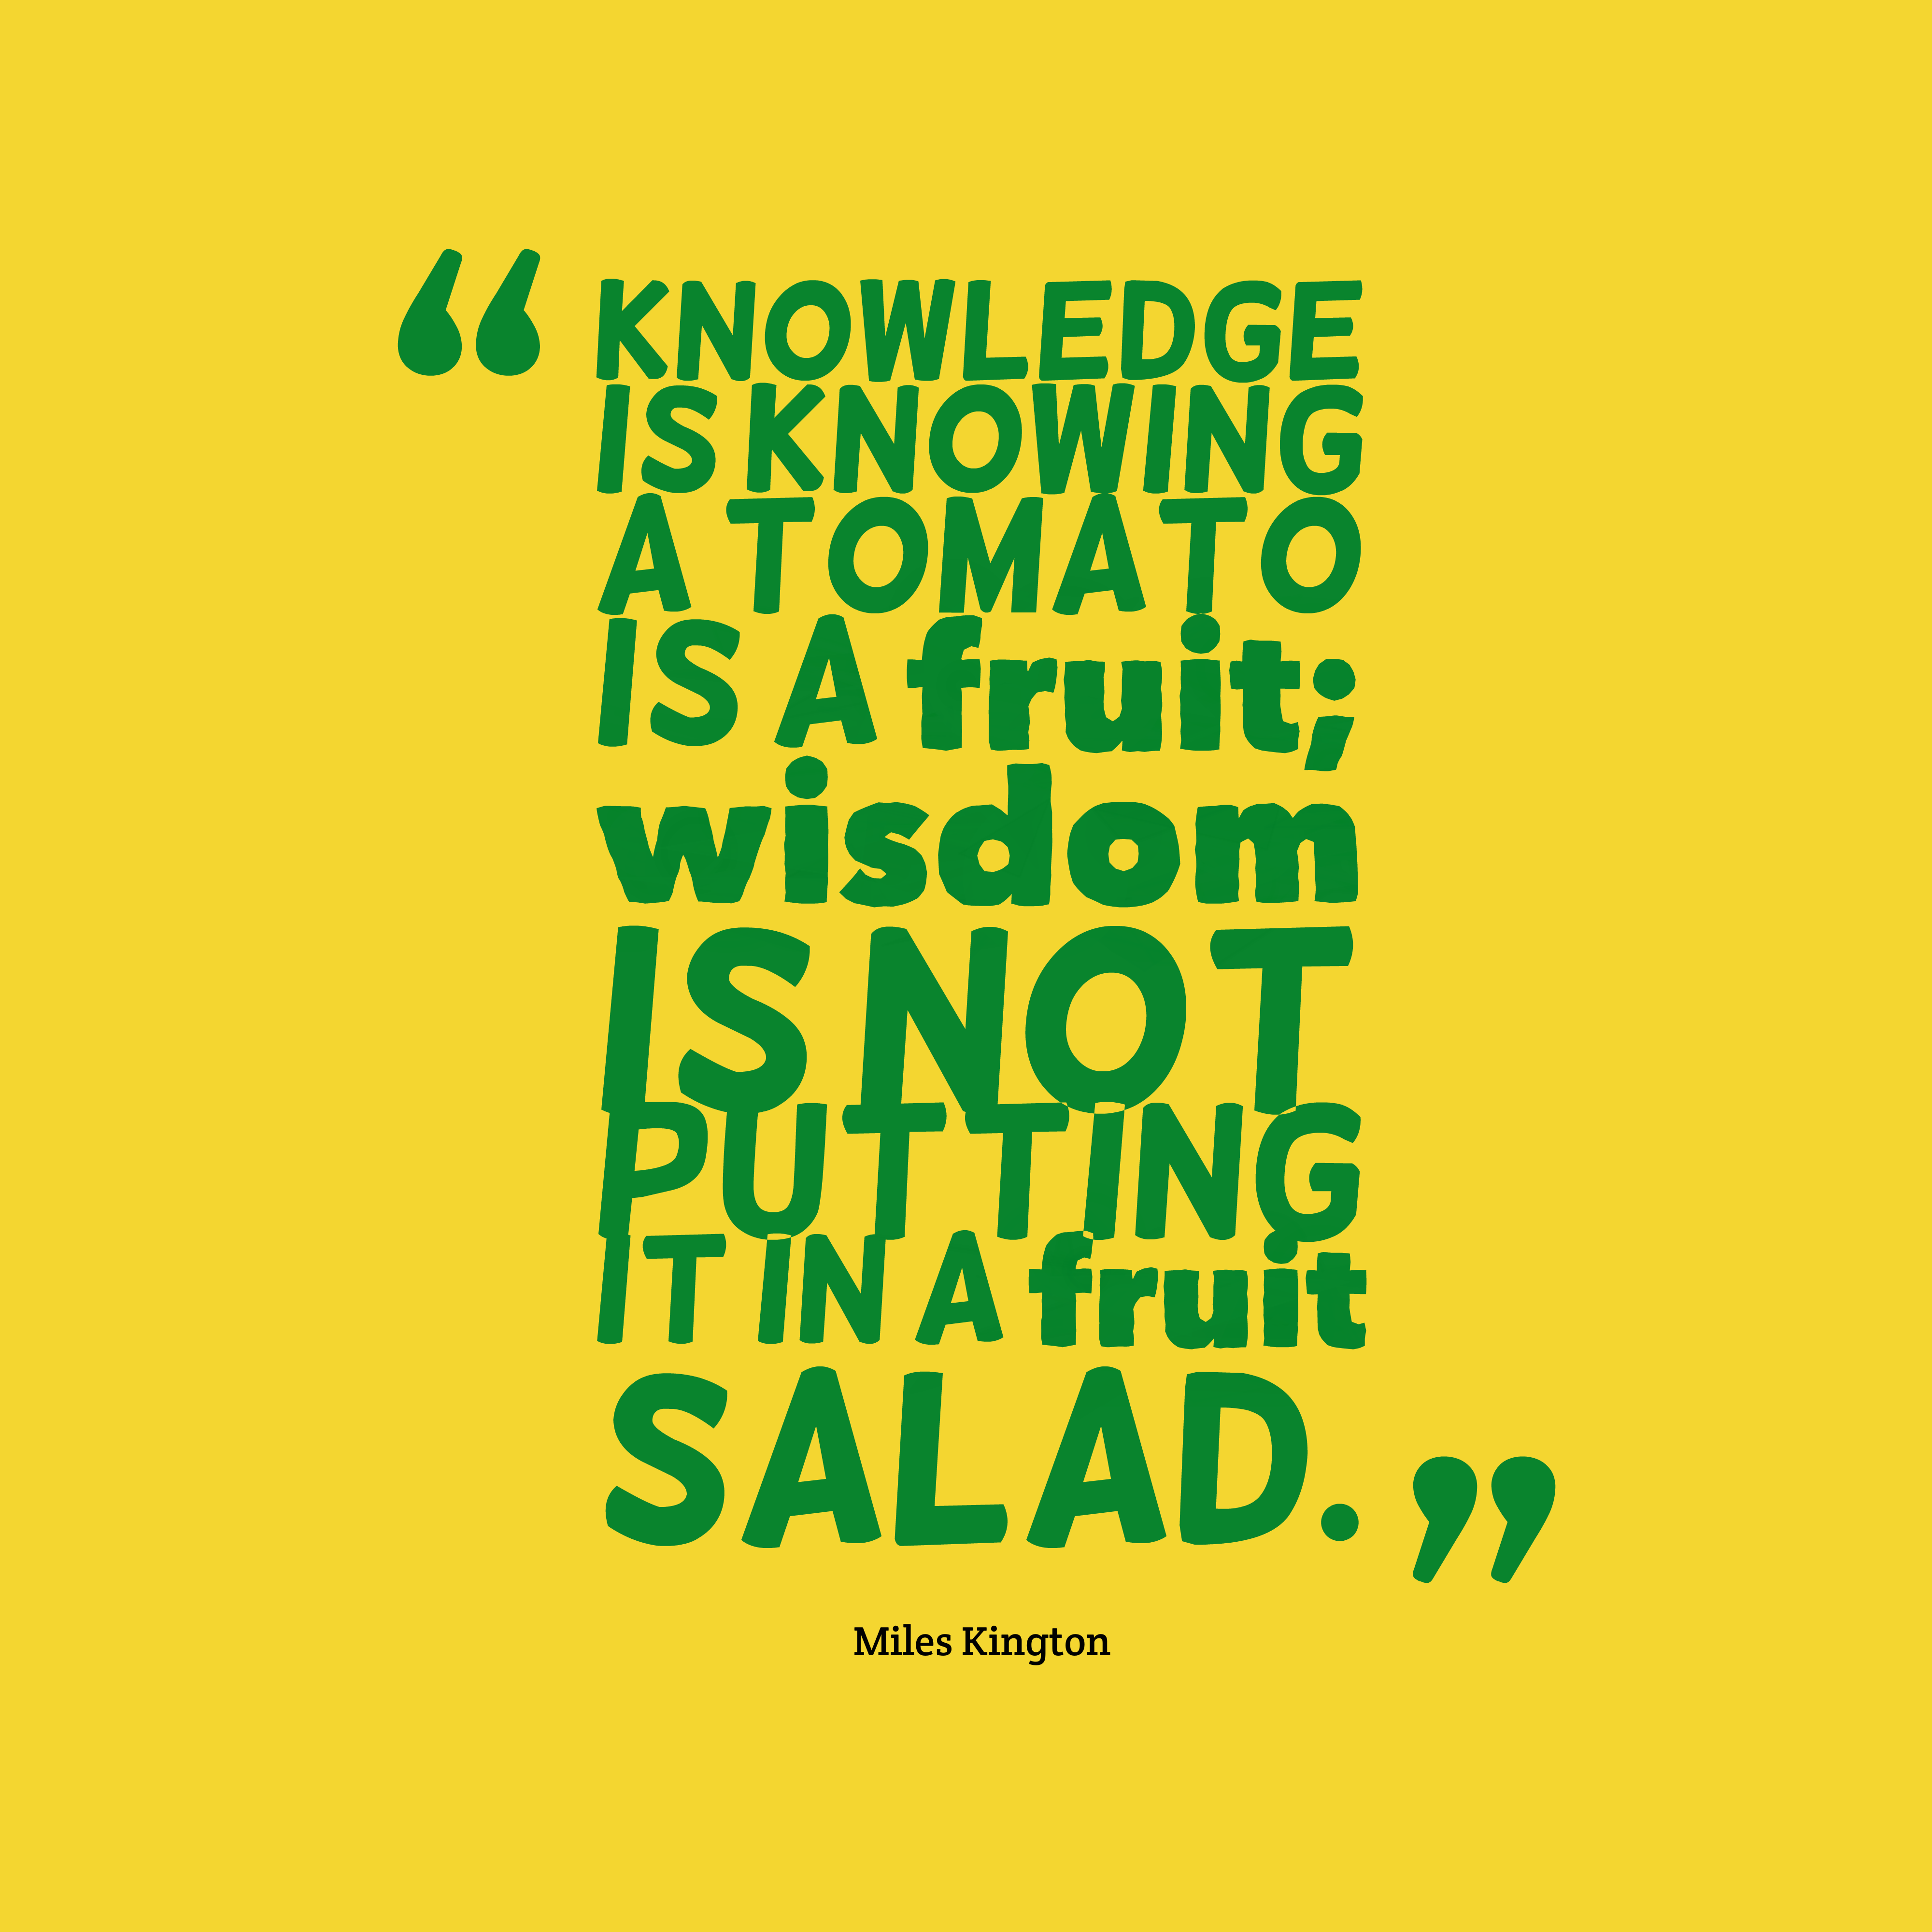 Picture Miles Kington Quote About Knowledge. QuotesCover.com